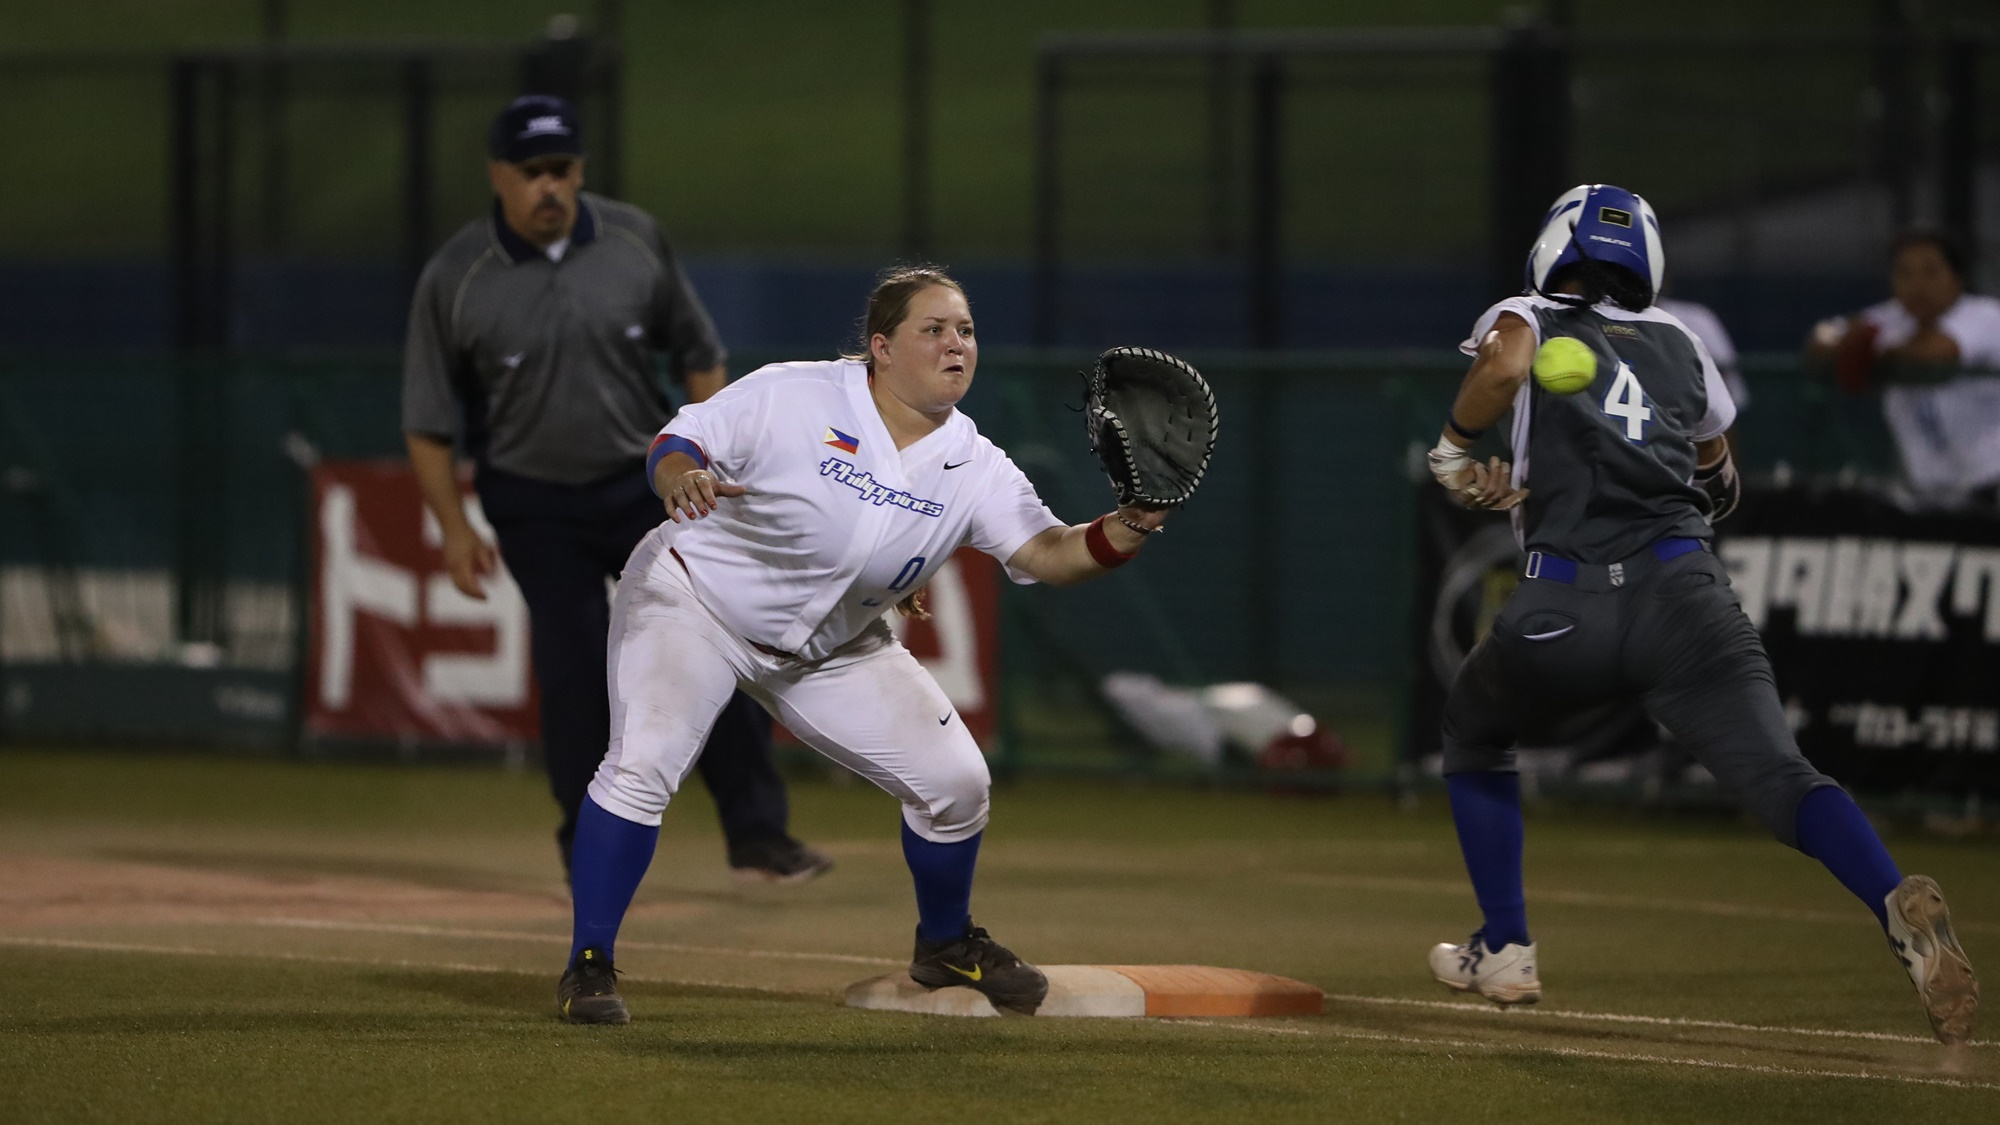 Hailey Decker puts out D'Orazio during the game between Puerto Rico and Philippines